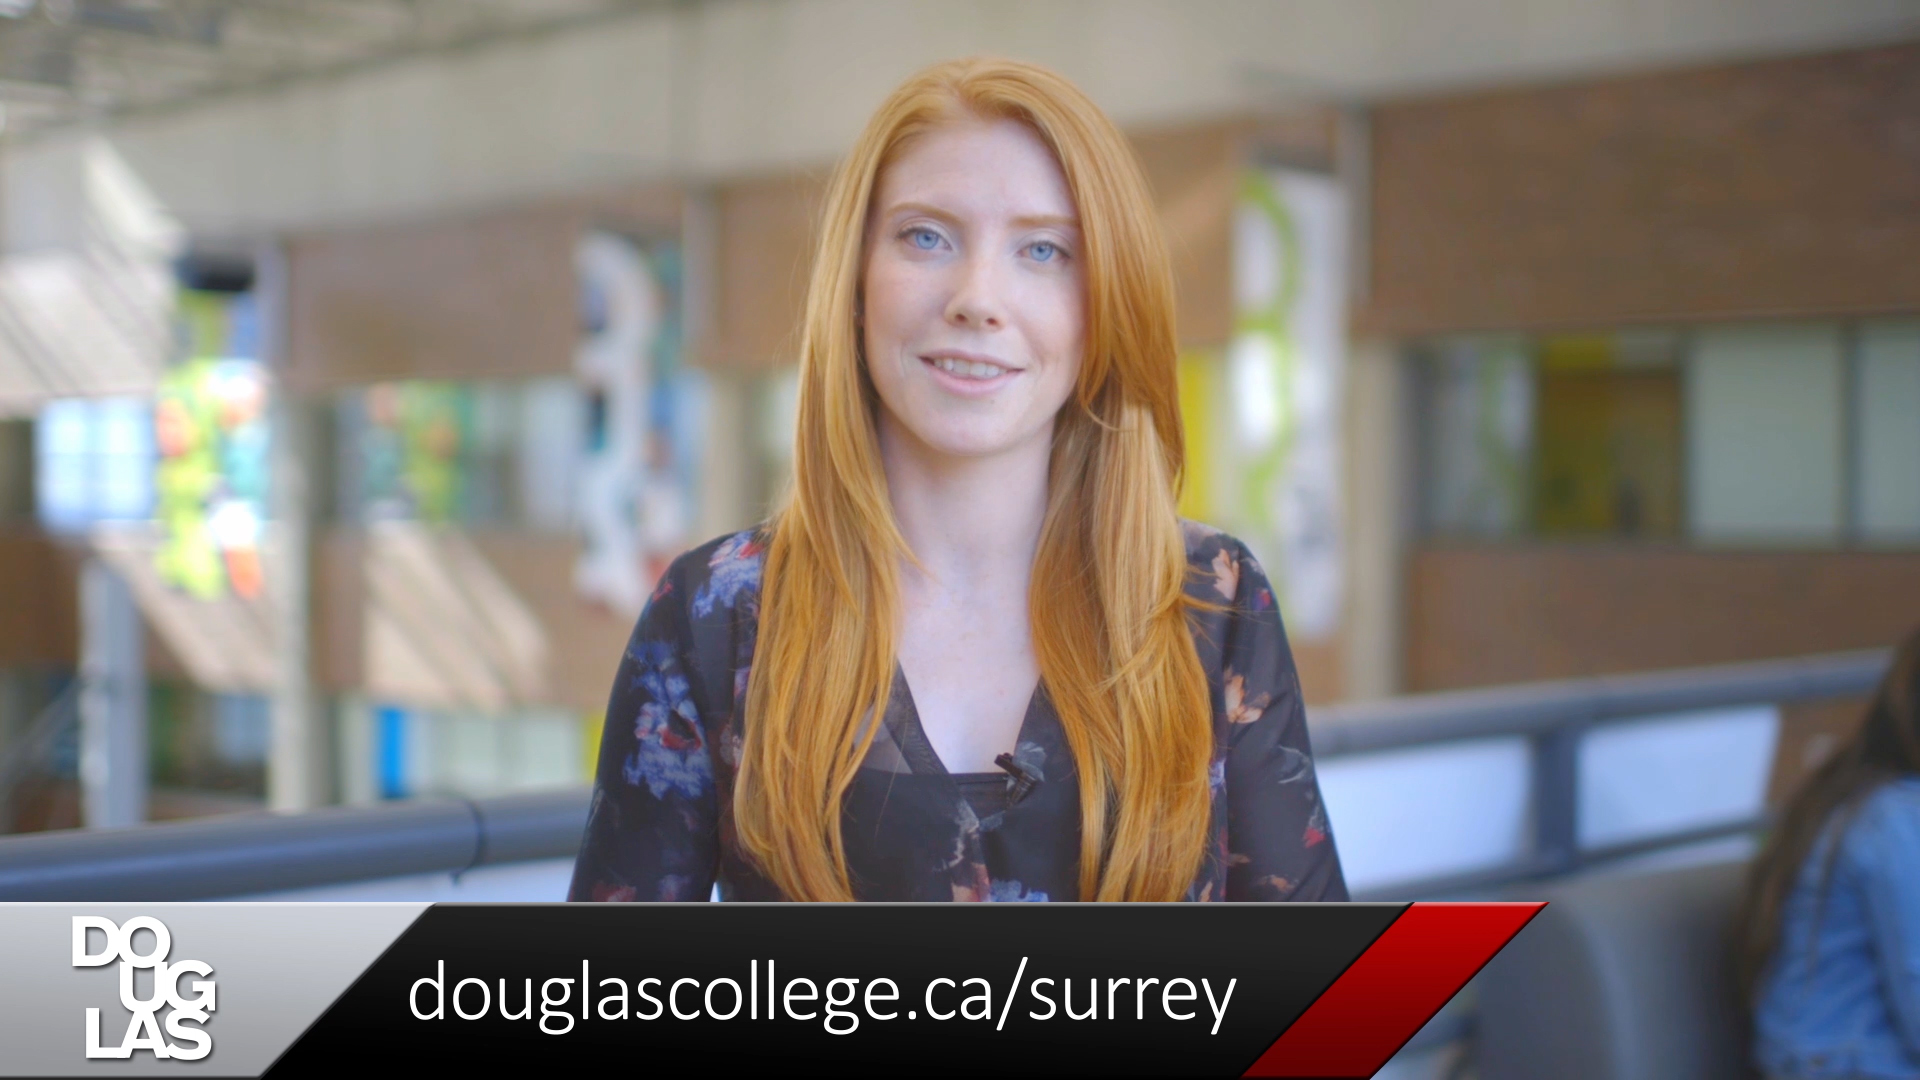 Douglas College Surrey Ad Campaign 20 Second Spot